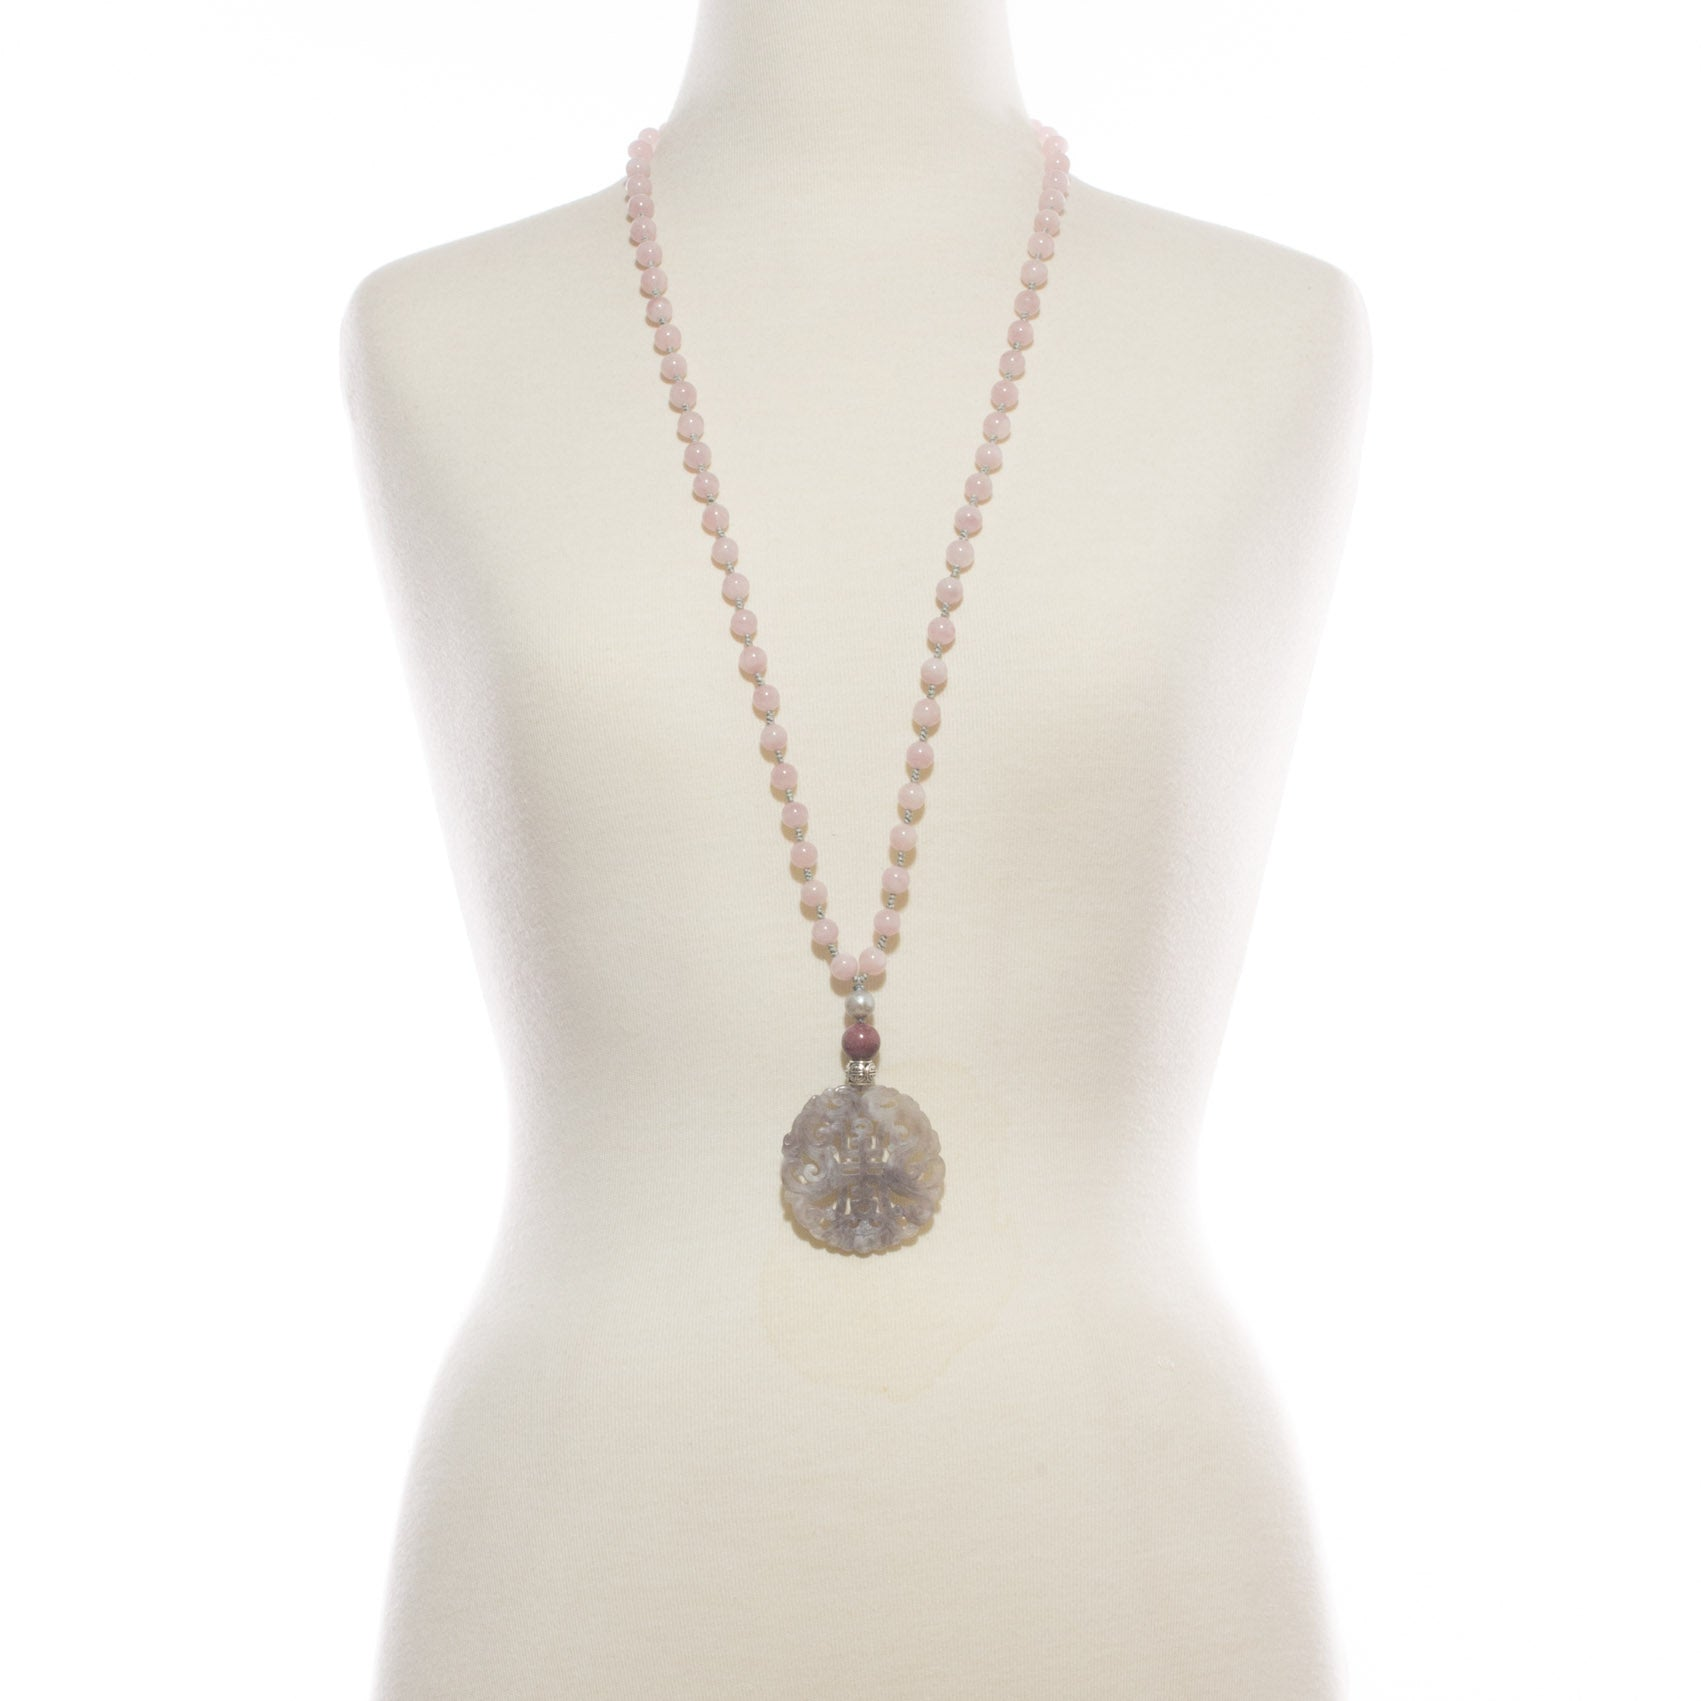 Most Happy Jade Pink Stone Long Necklace | Stones that Rock